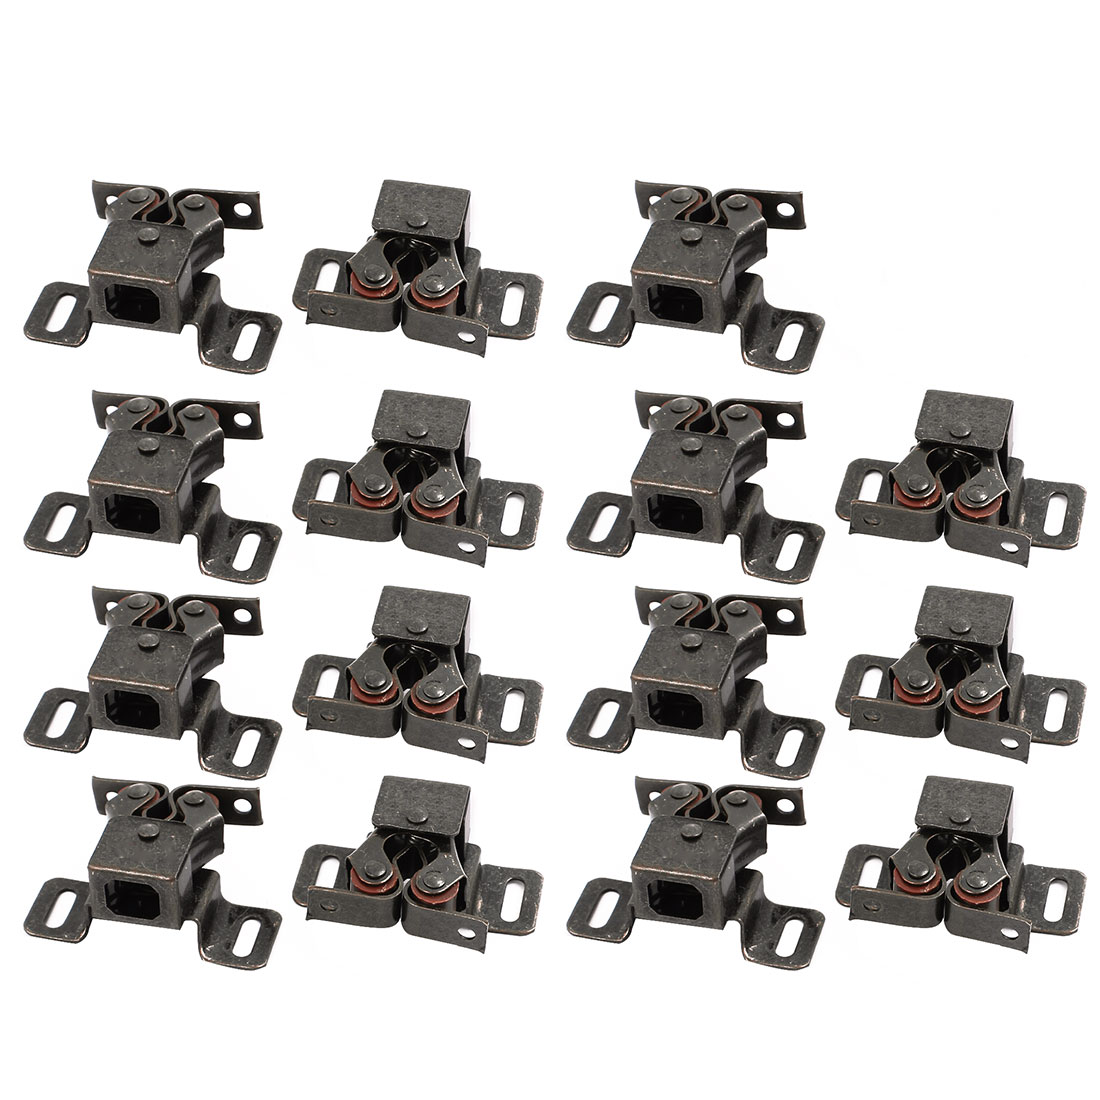 Cupboard Cabinet 46x30x20mm Door Double Ball Roller Catch Latch Bronze 15pcs